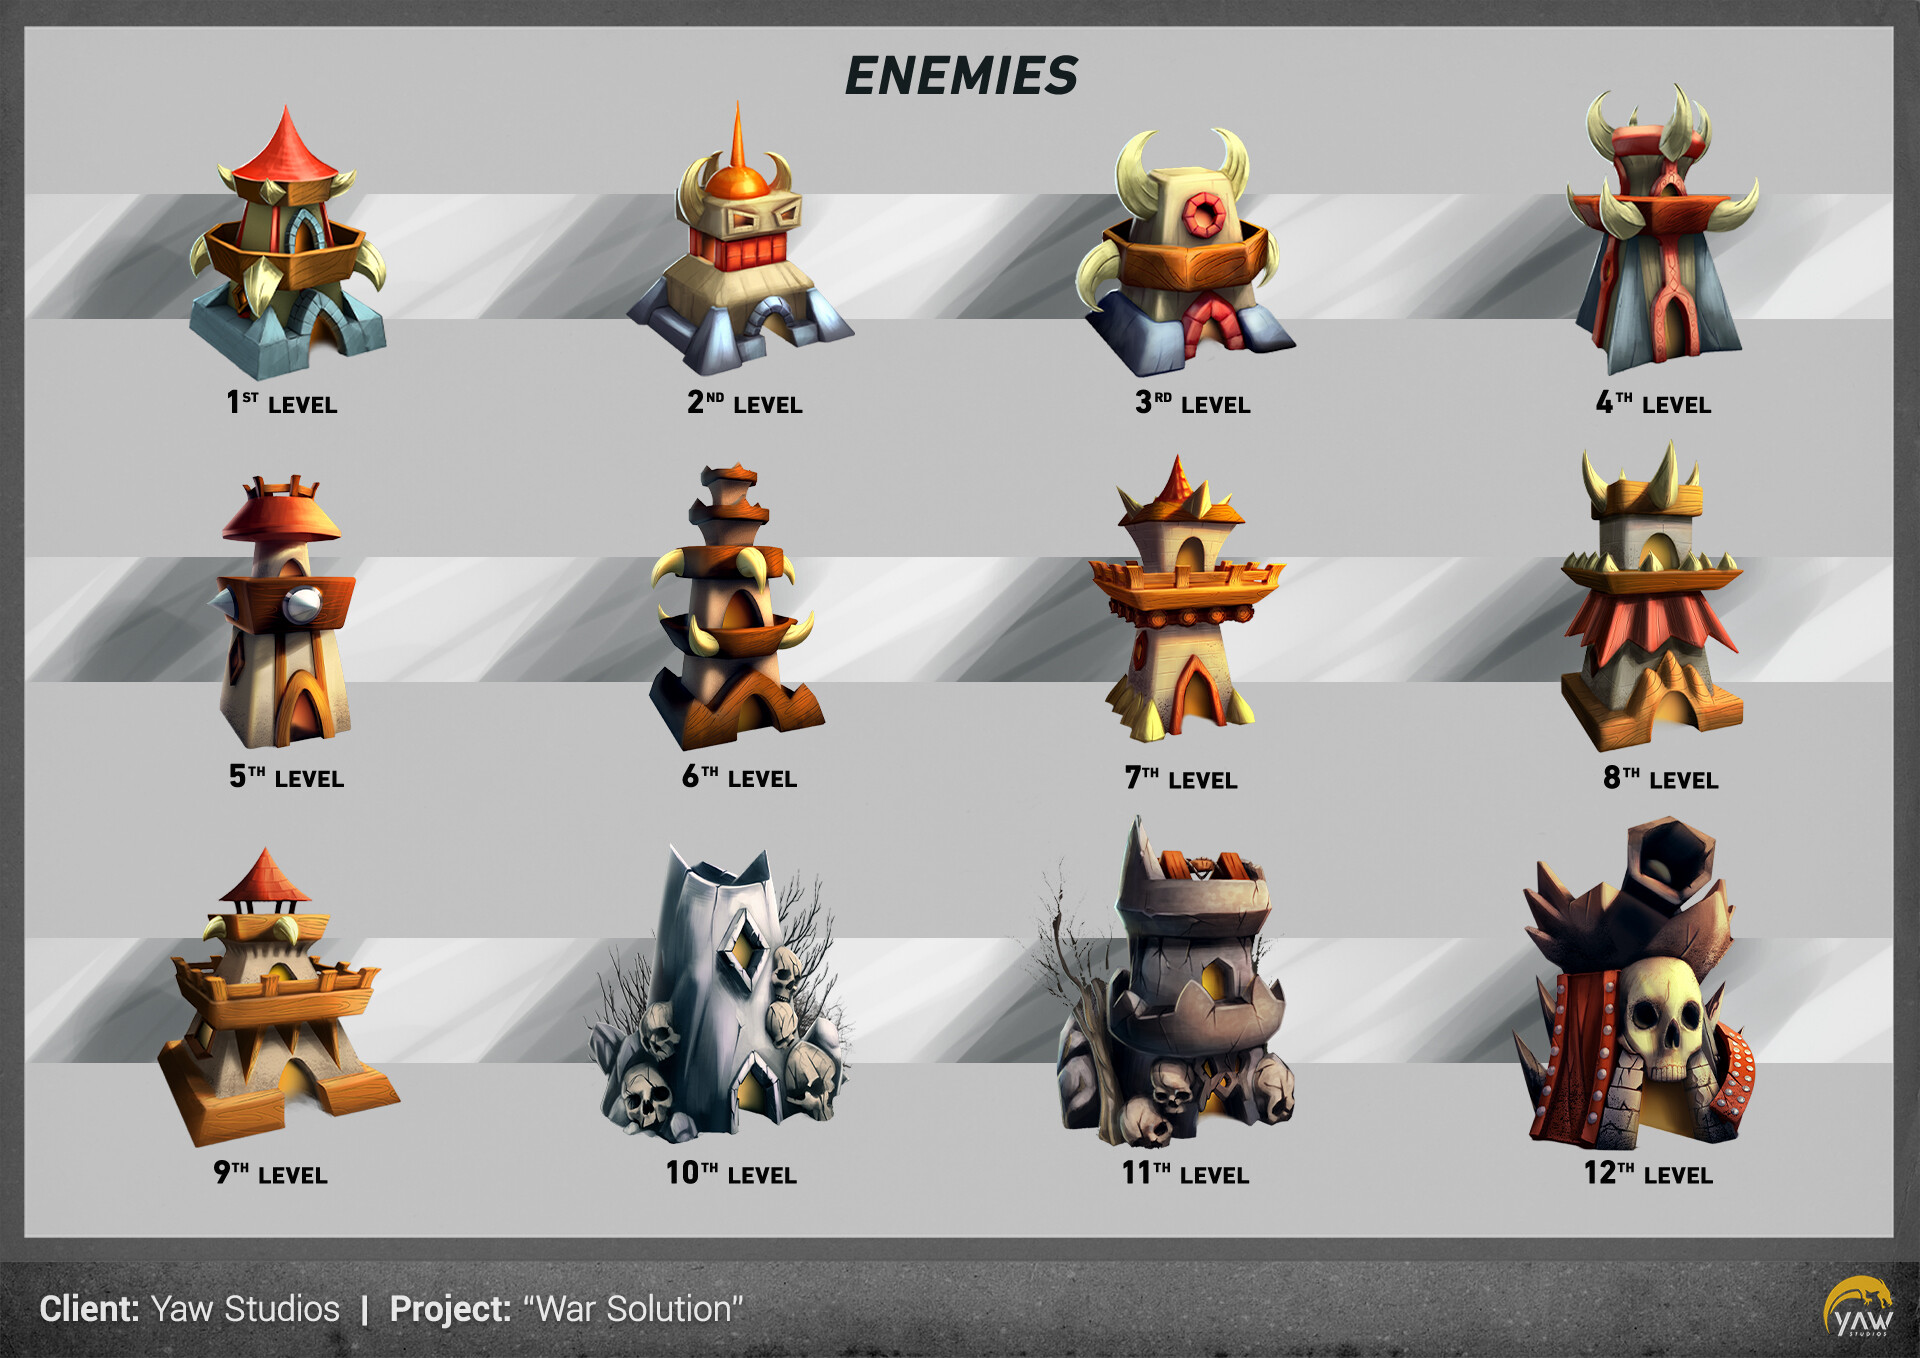 Here are the 12 enemies you will face in the first world of the game!